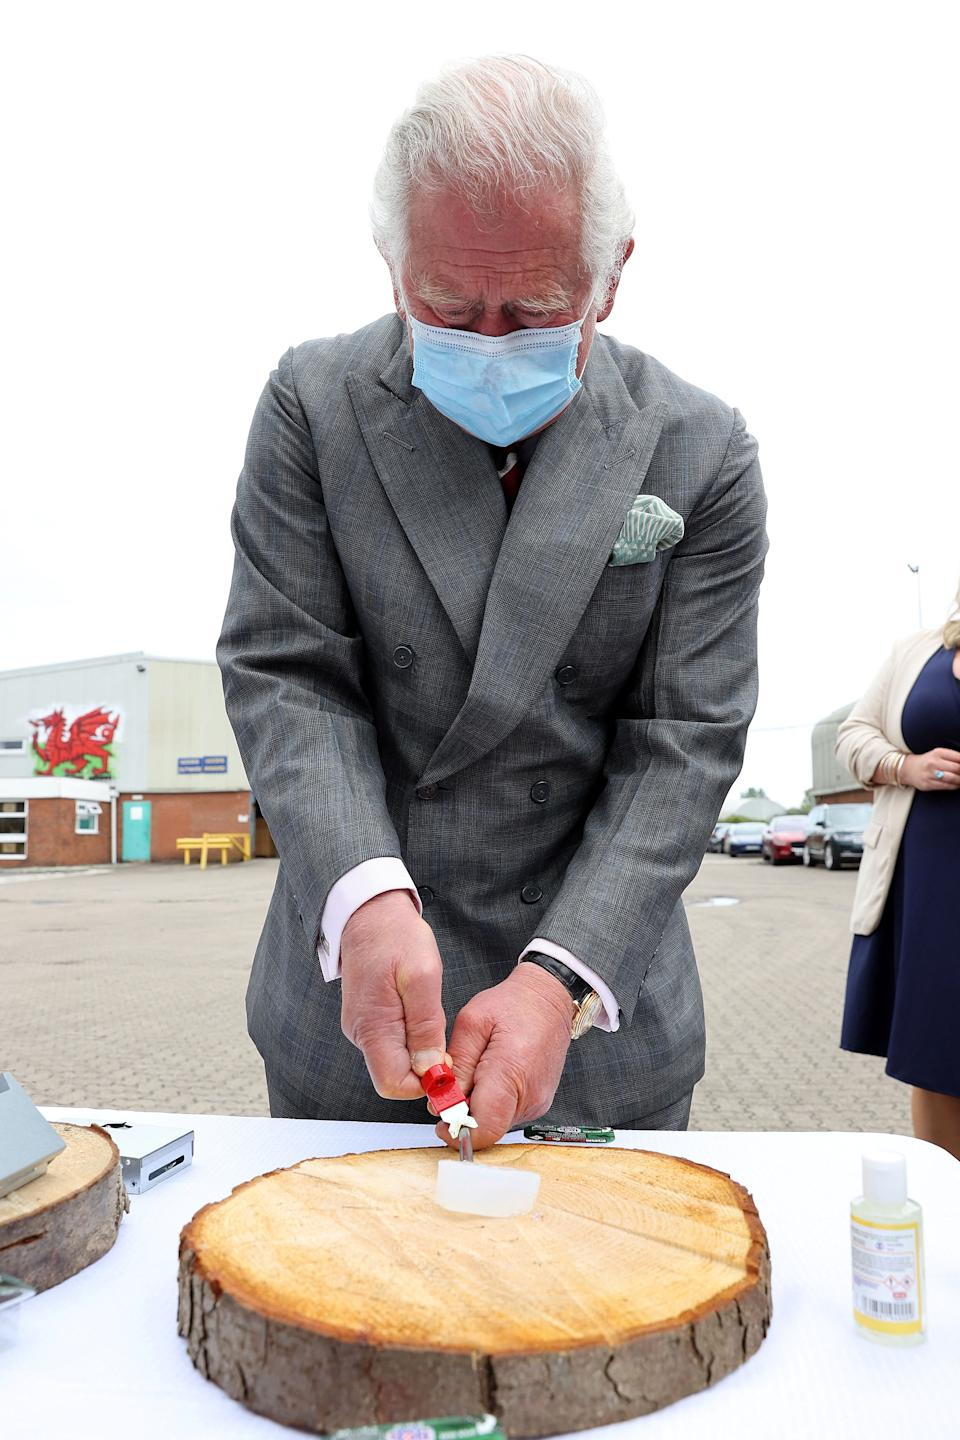 Britain's Prince Charles, Prince of Wales lights Fire Dragon fuel during a visit to BCB International, a supplier of protective, medical and defence equipment, in Cardiff on May 14, 2021, during his day-long visit to Wales. (Photo by Chris Jackson / POOL / AFP) (Photo by CHRIS JACKSON/POOL/AFP via Getty Images)